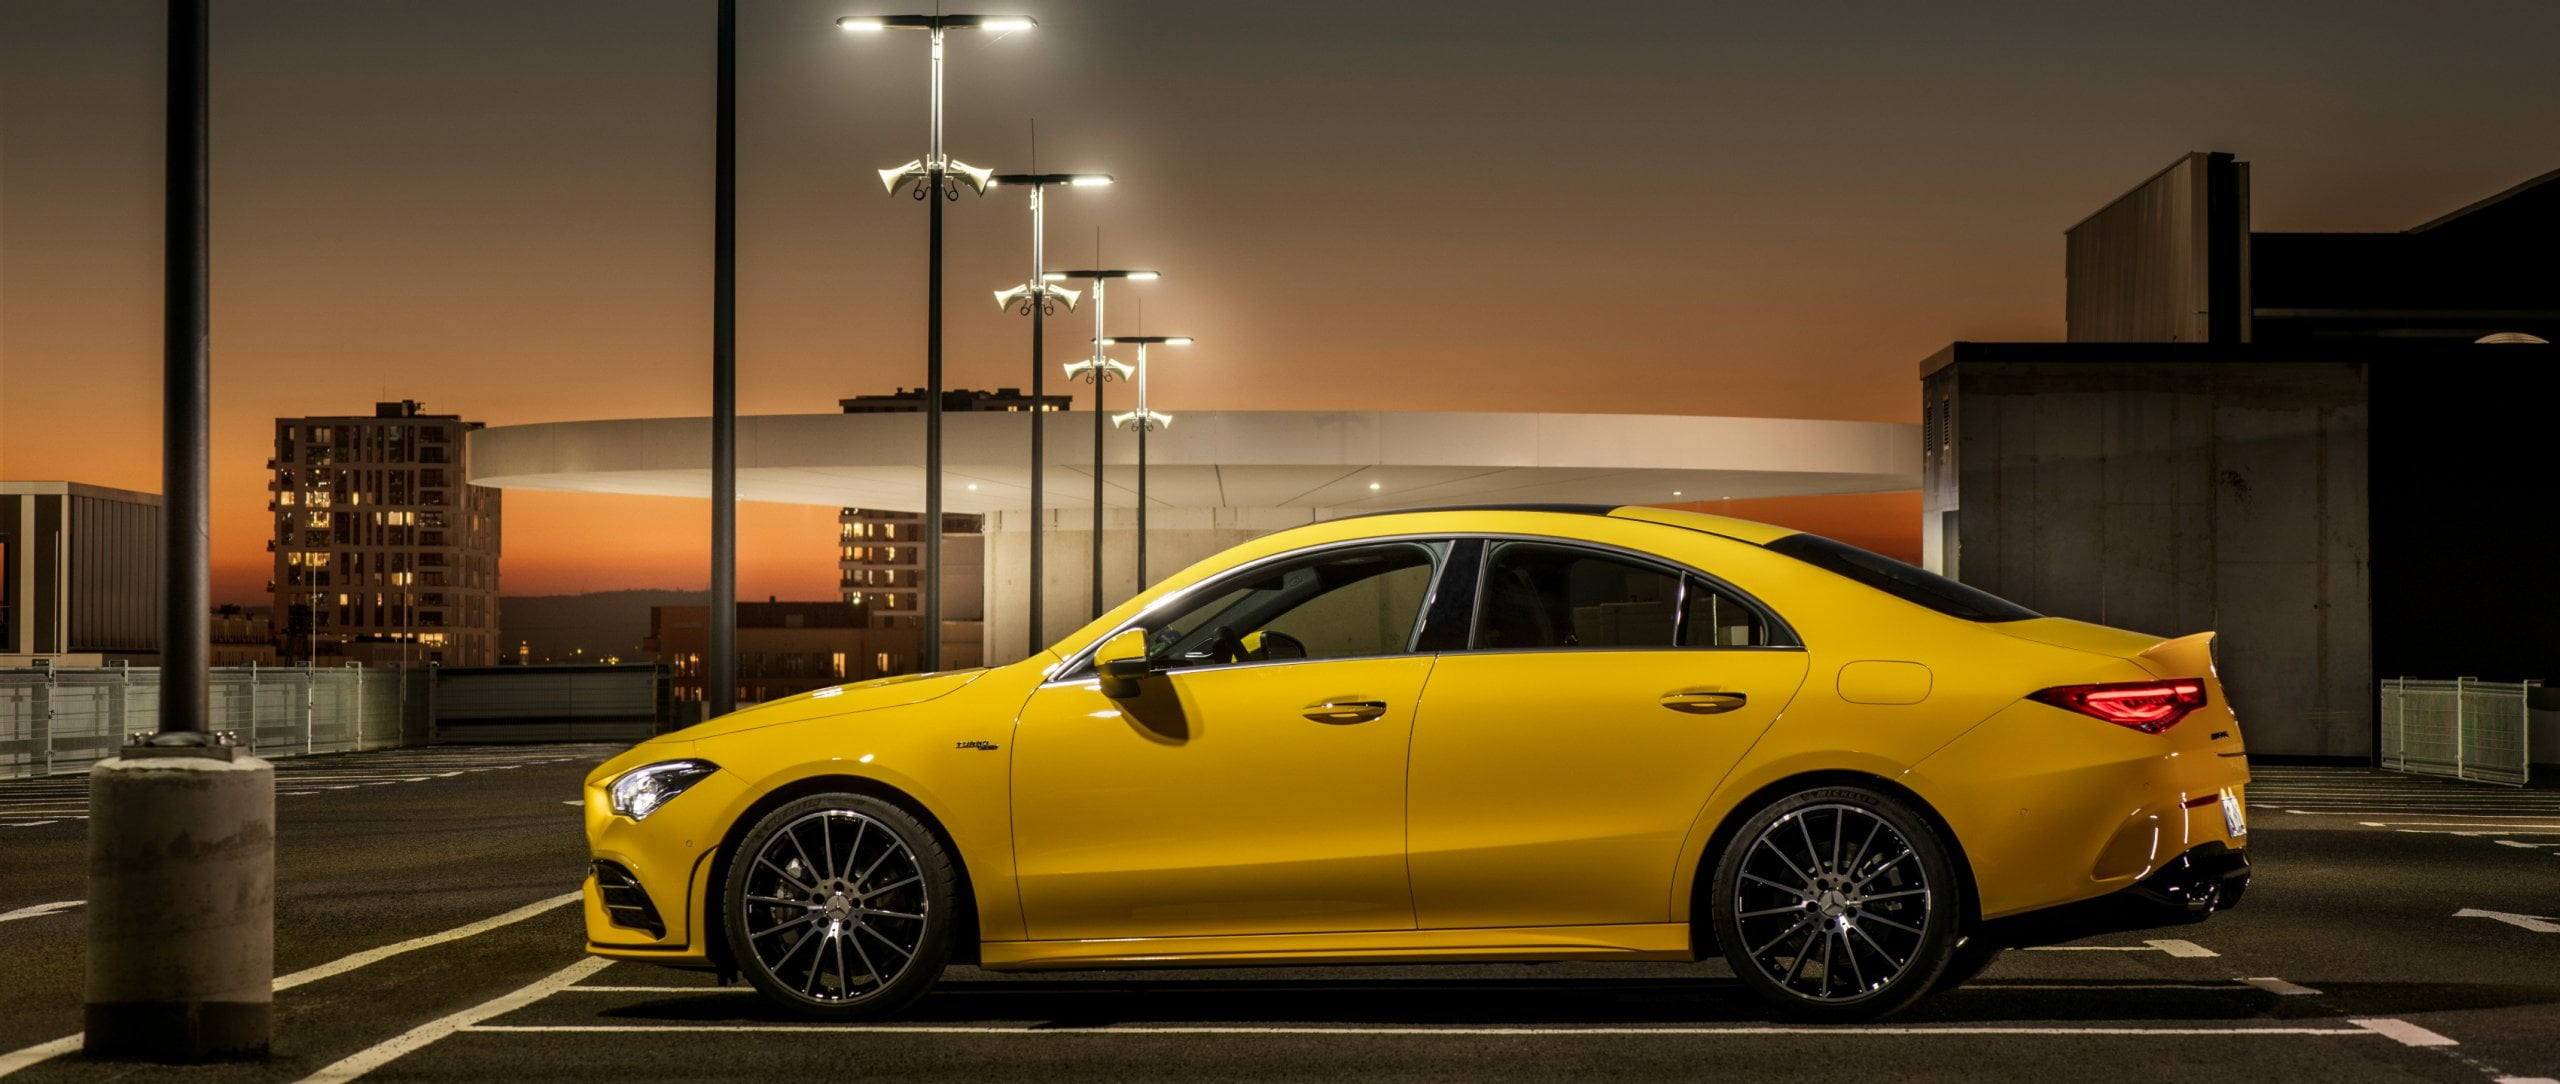 The new 2019 Mercedes-AMG CLA 35 4MATIC (C 118) in sun yellow on top of a parking garage.